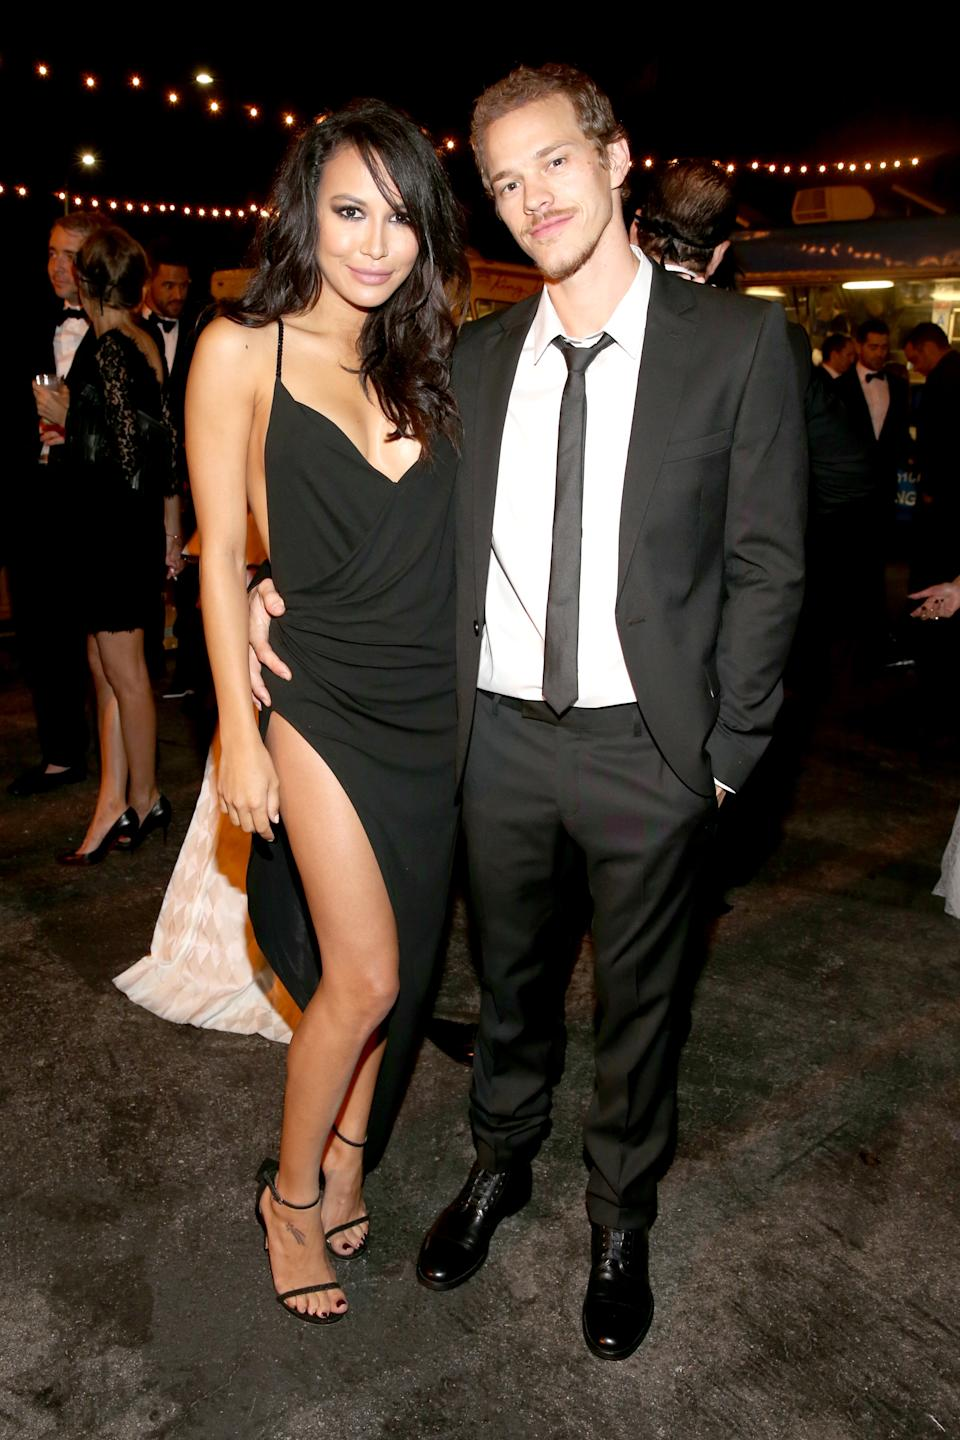 Naya Rivera and Ryan Dorsey are pictured together in 2014. (Photo: Getty Images)